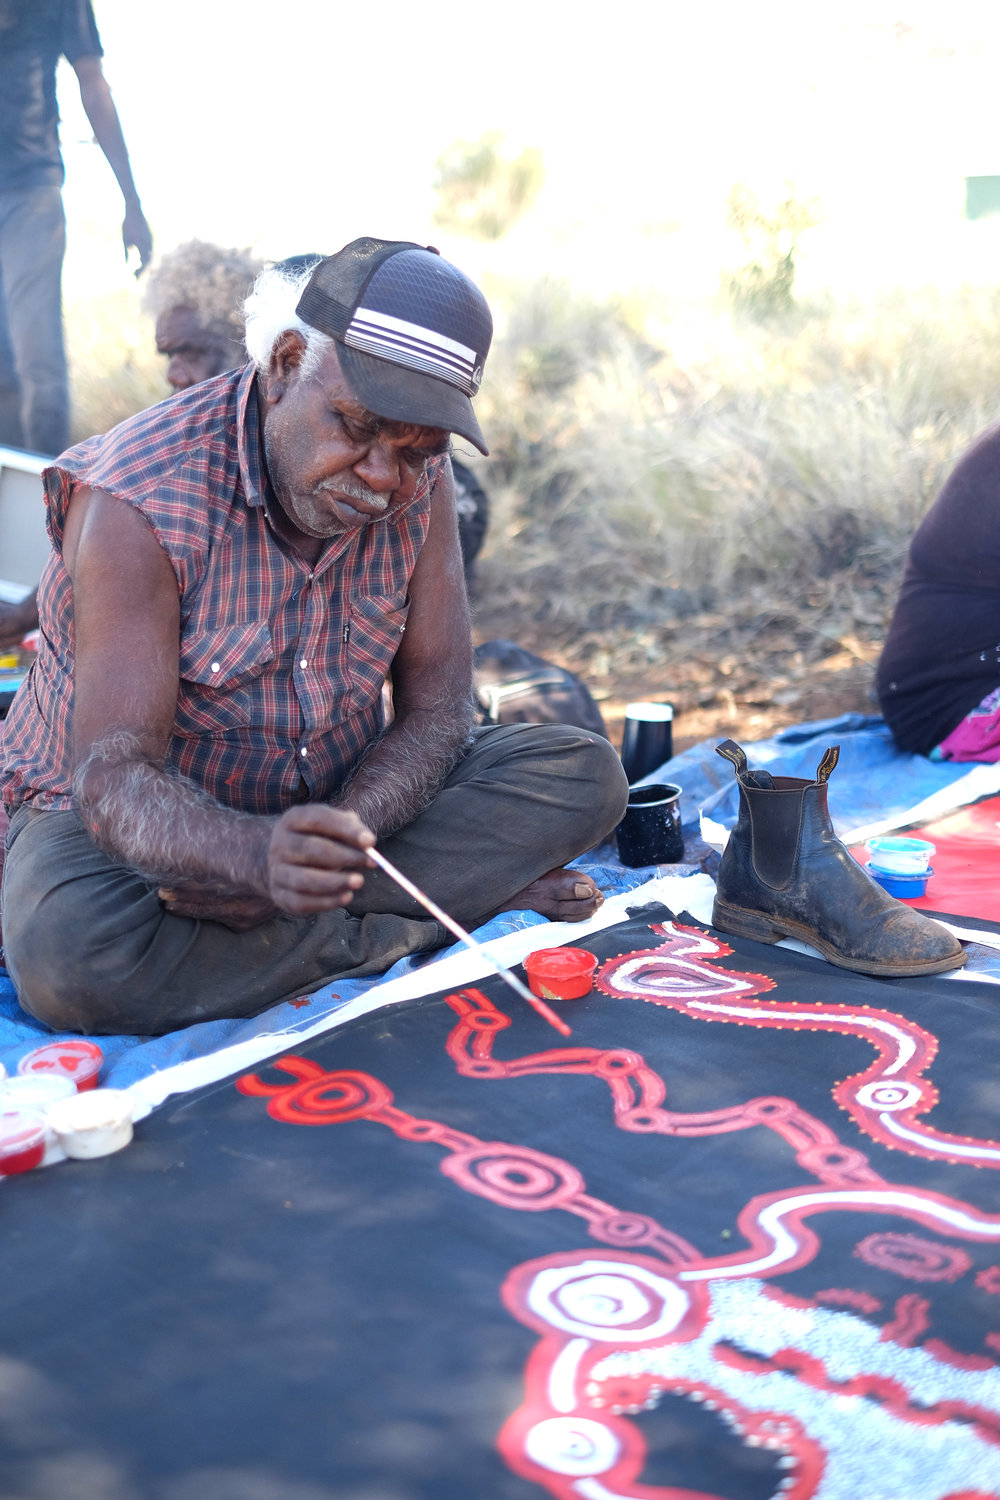 Mr David Miller painting outside of Kalka community, APY Lands, 2018. Photo by Melanie Henderson, Ku Arts.